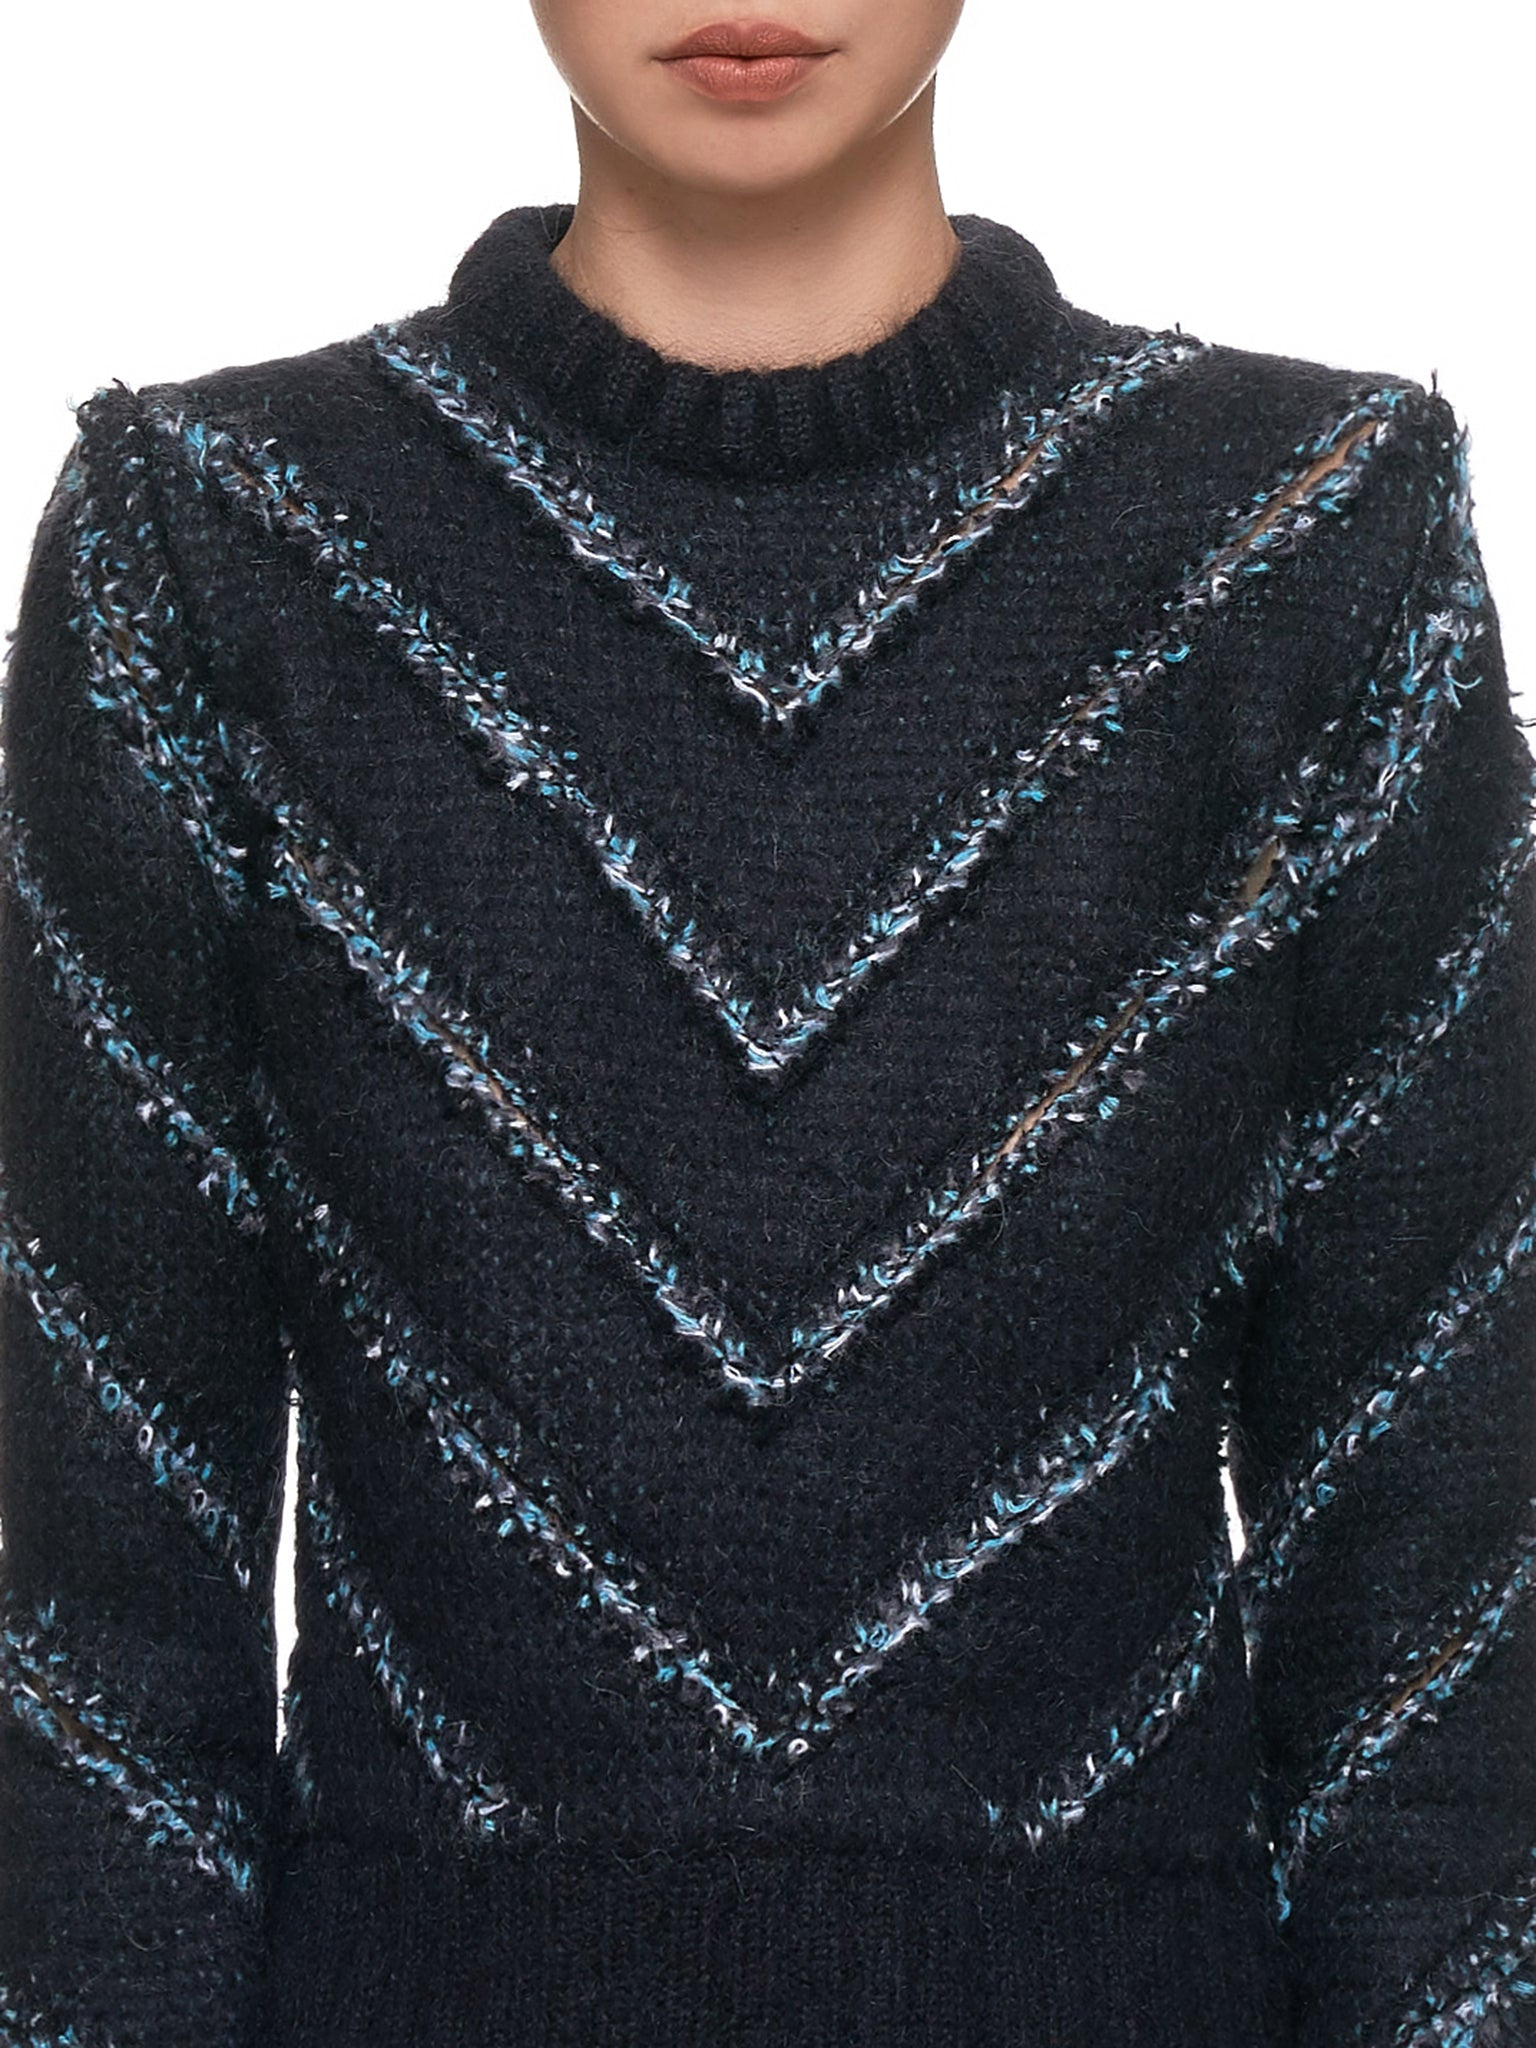 Y/Project Sweater - Hlorenzo Detail 1